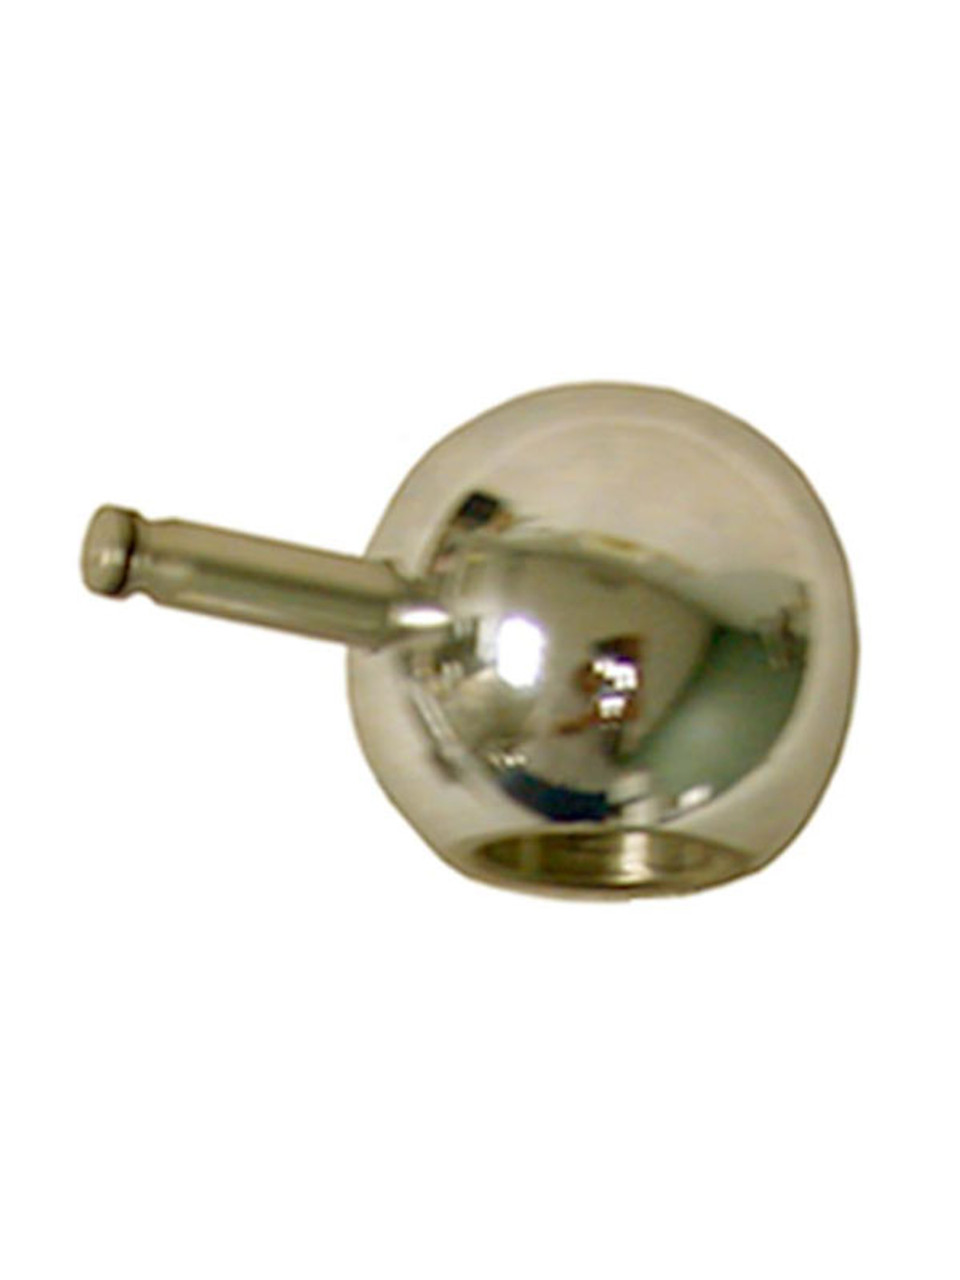 "CB601 --- Convert-A-Ball, 2-5/16"" Stainless Steel Hitch Ball"